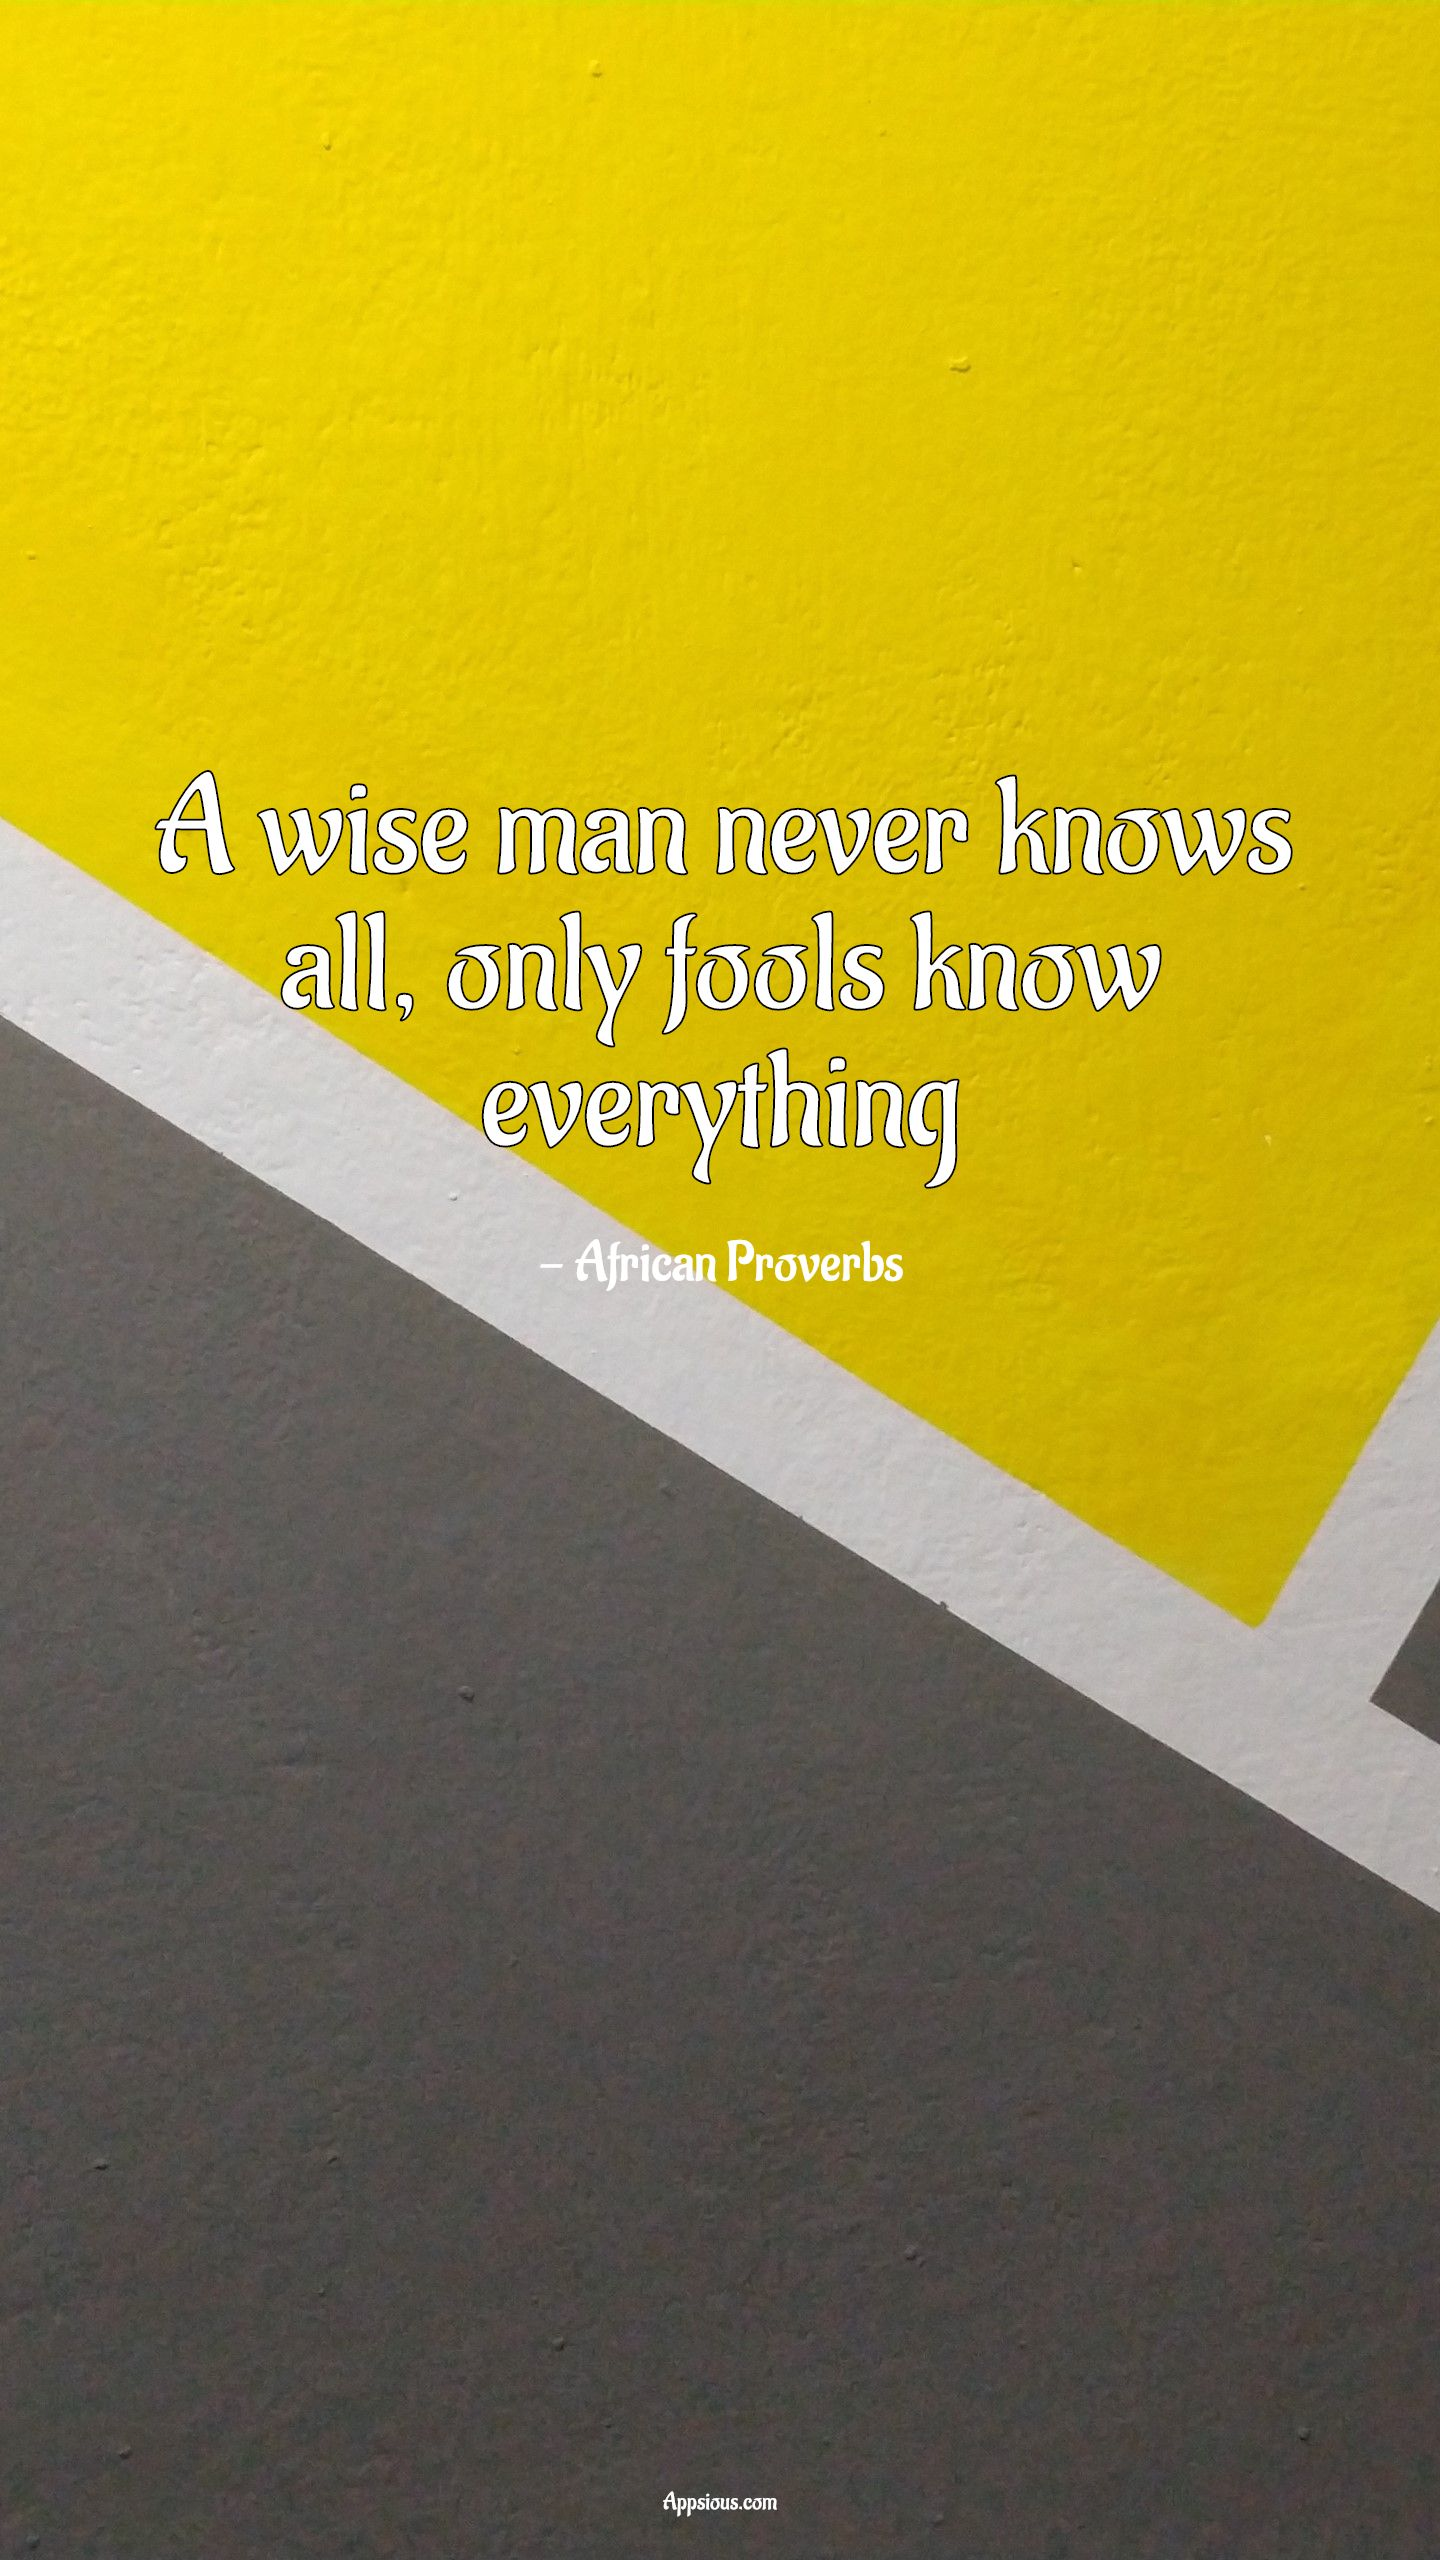 A wise man never knows all, only fools know everything